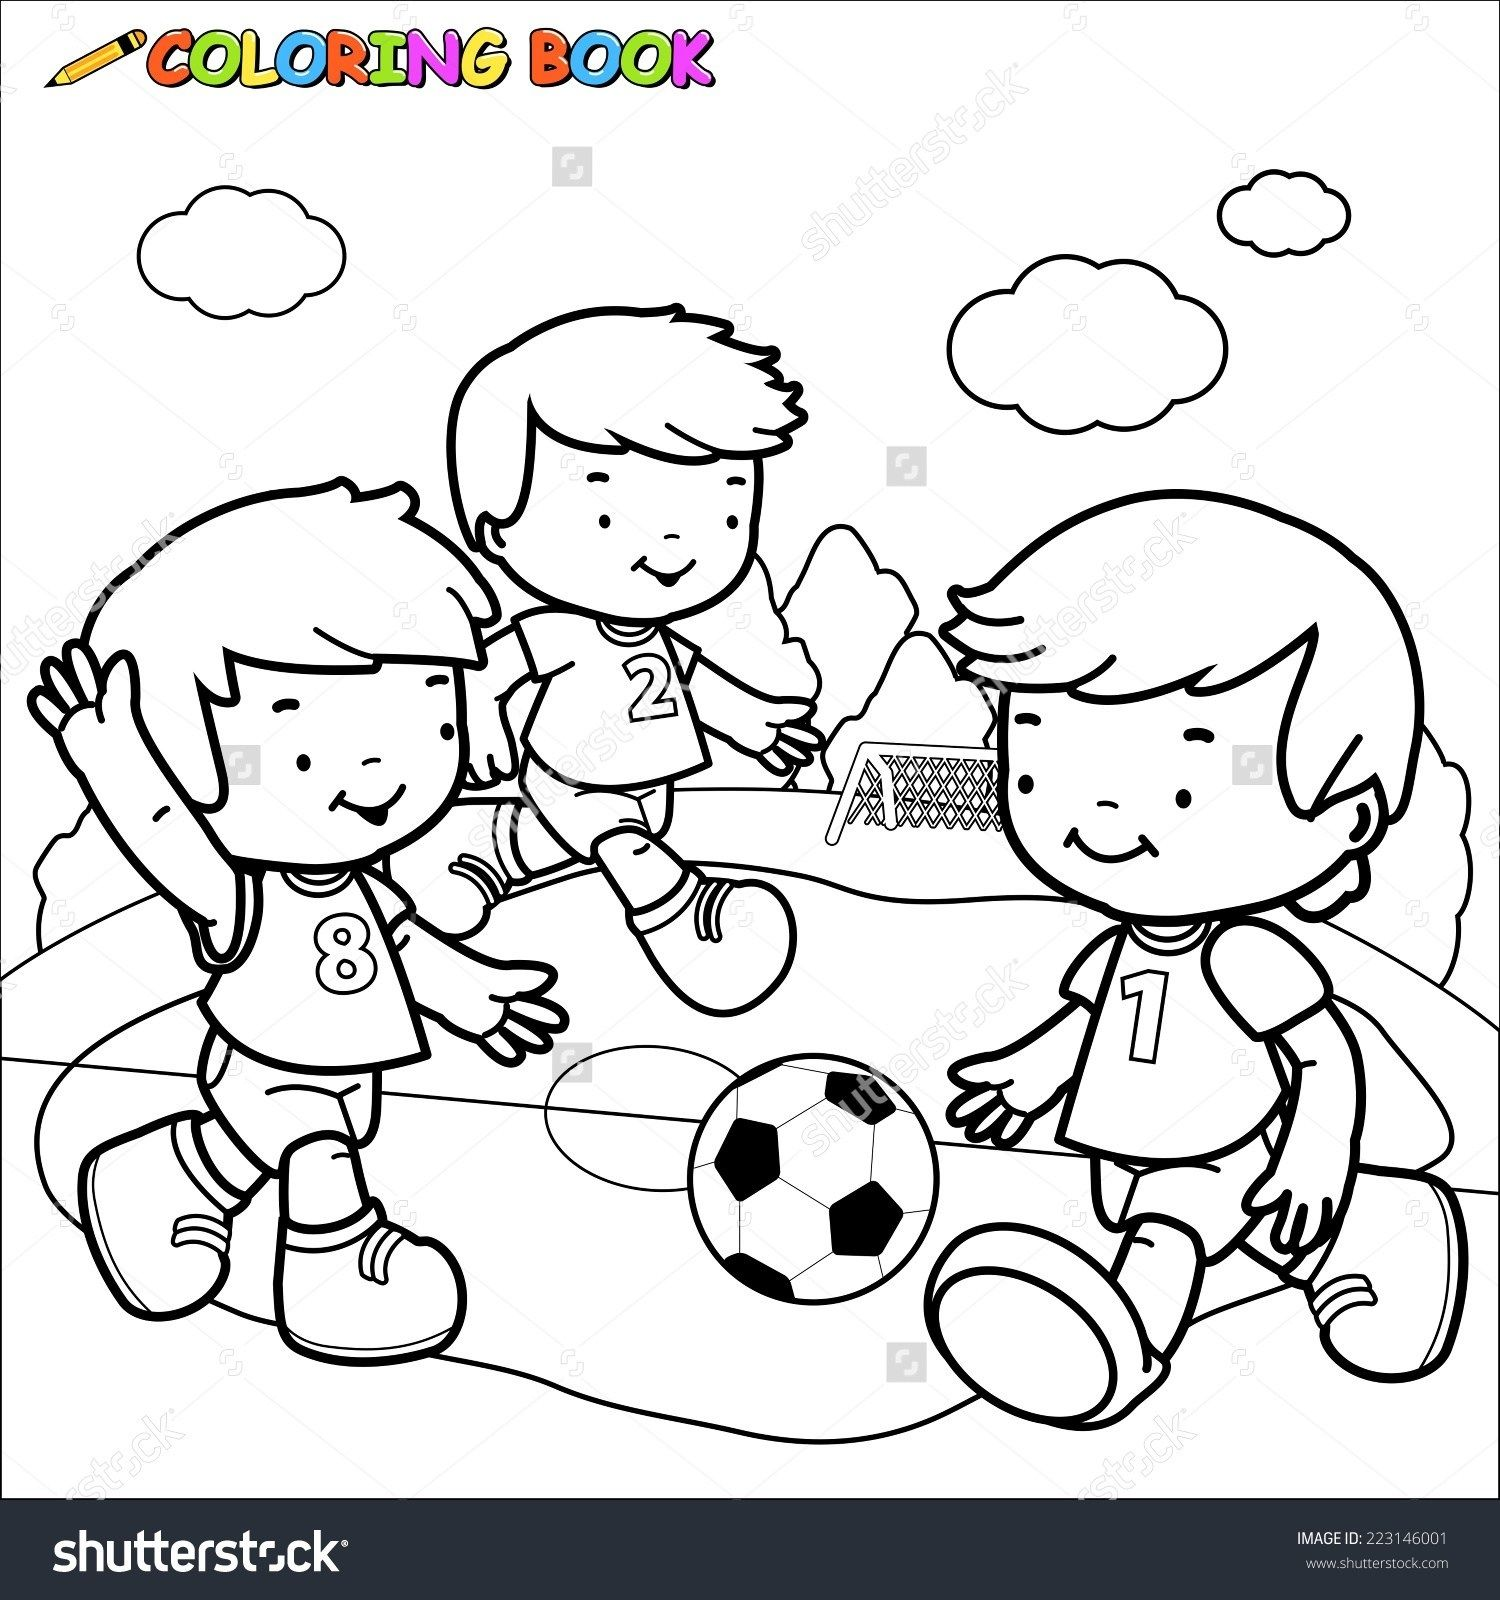 Children Play Park Clipart Black And White Clrg In Children Playing In The Park Clipart Black And Cartoon Coloring Pages Coloring Books Hello Kitty Coloring